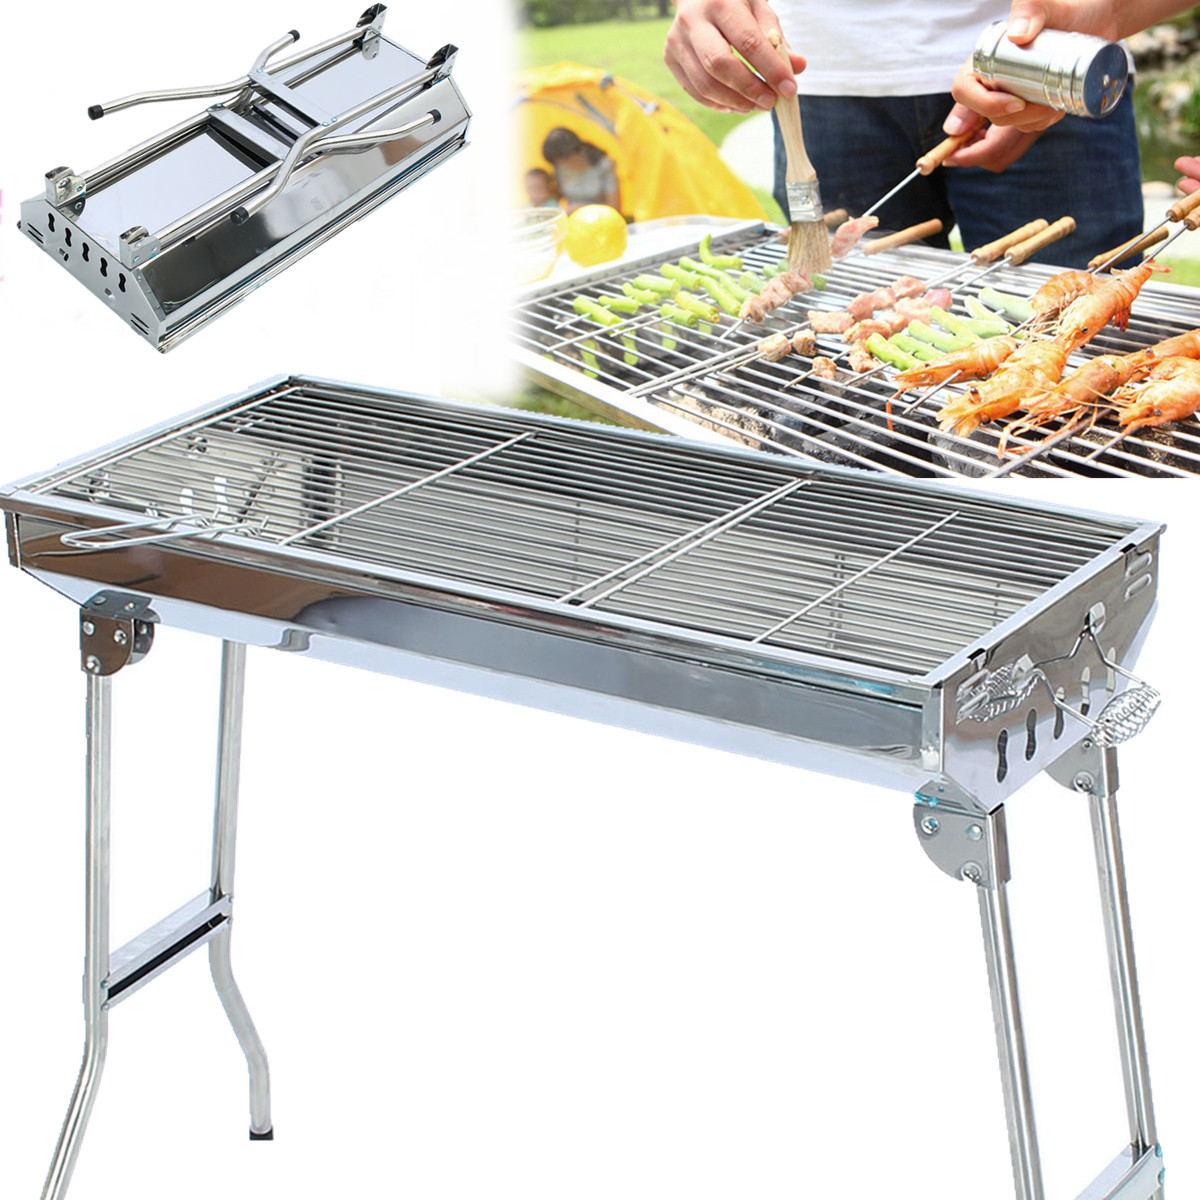 BBQ Grill Stove Stand Foldable Stand Stainless Barbecue Charcoal Grill with 2 Nets,2 Handles camping Outdoor Picnic Camping